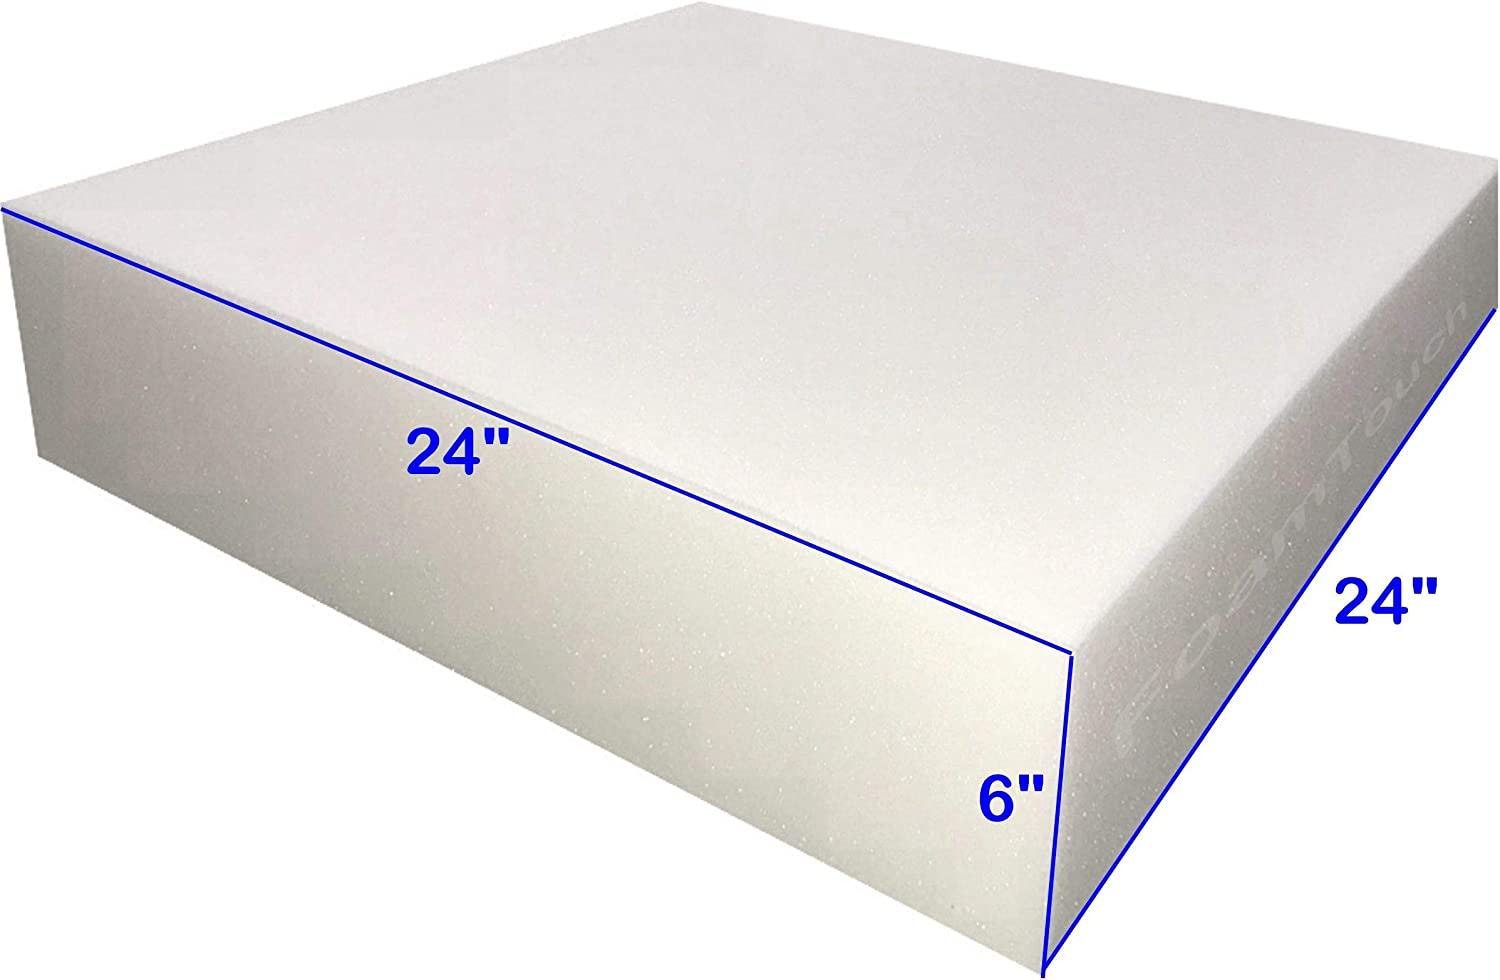 "FoamTouch 6x24x24HDF Upholstery Foam Cushion High Density, 6"" H X 24"" W X 24"" L"